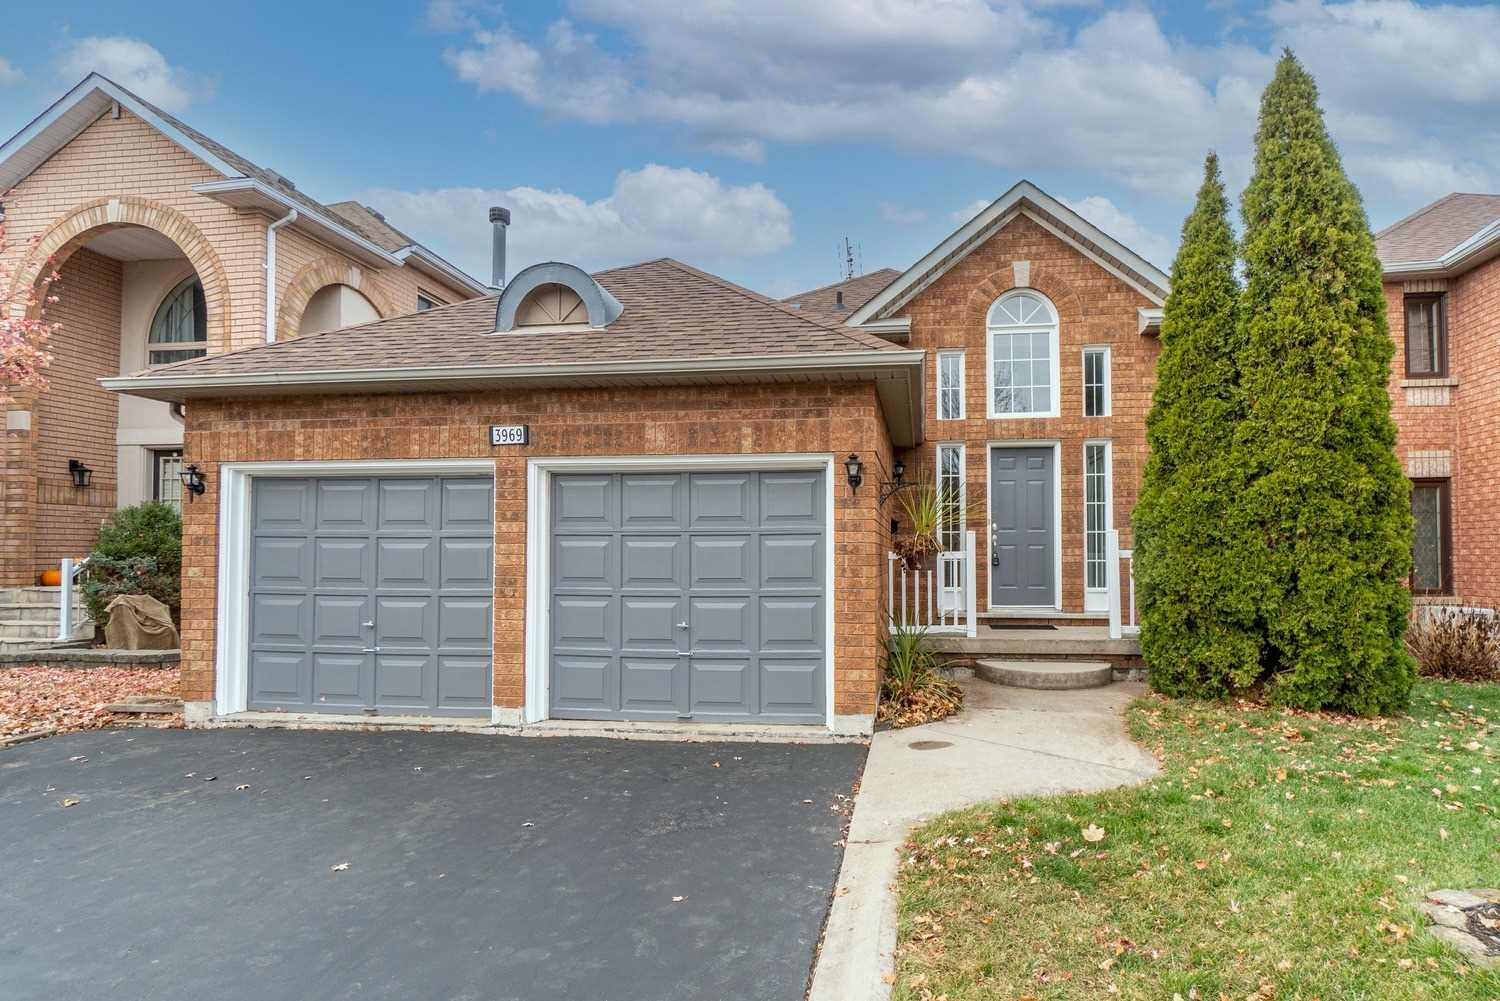 For Sale: 3969 Parkgate Drive, Mississauga, ON   2 Bed, 2 Bath House for $799000.00. See 37 photos!